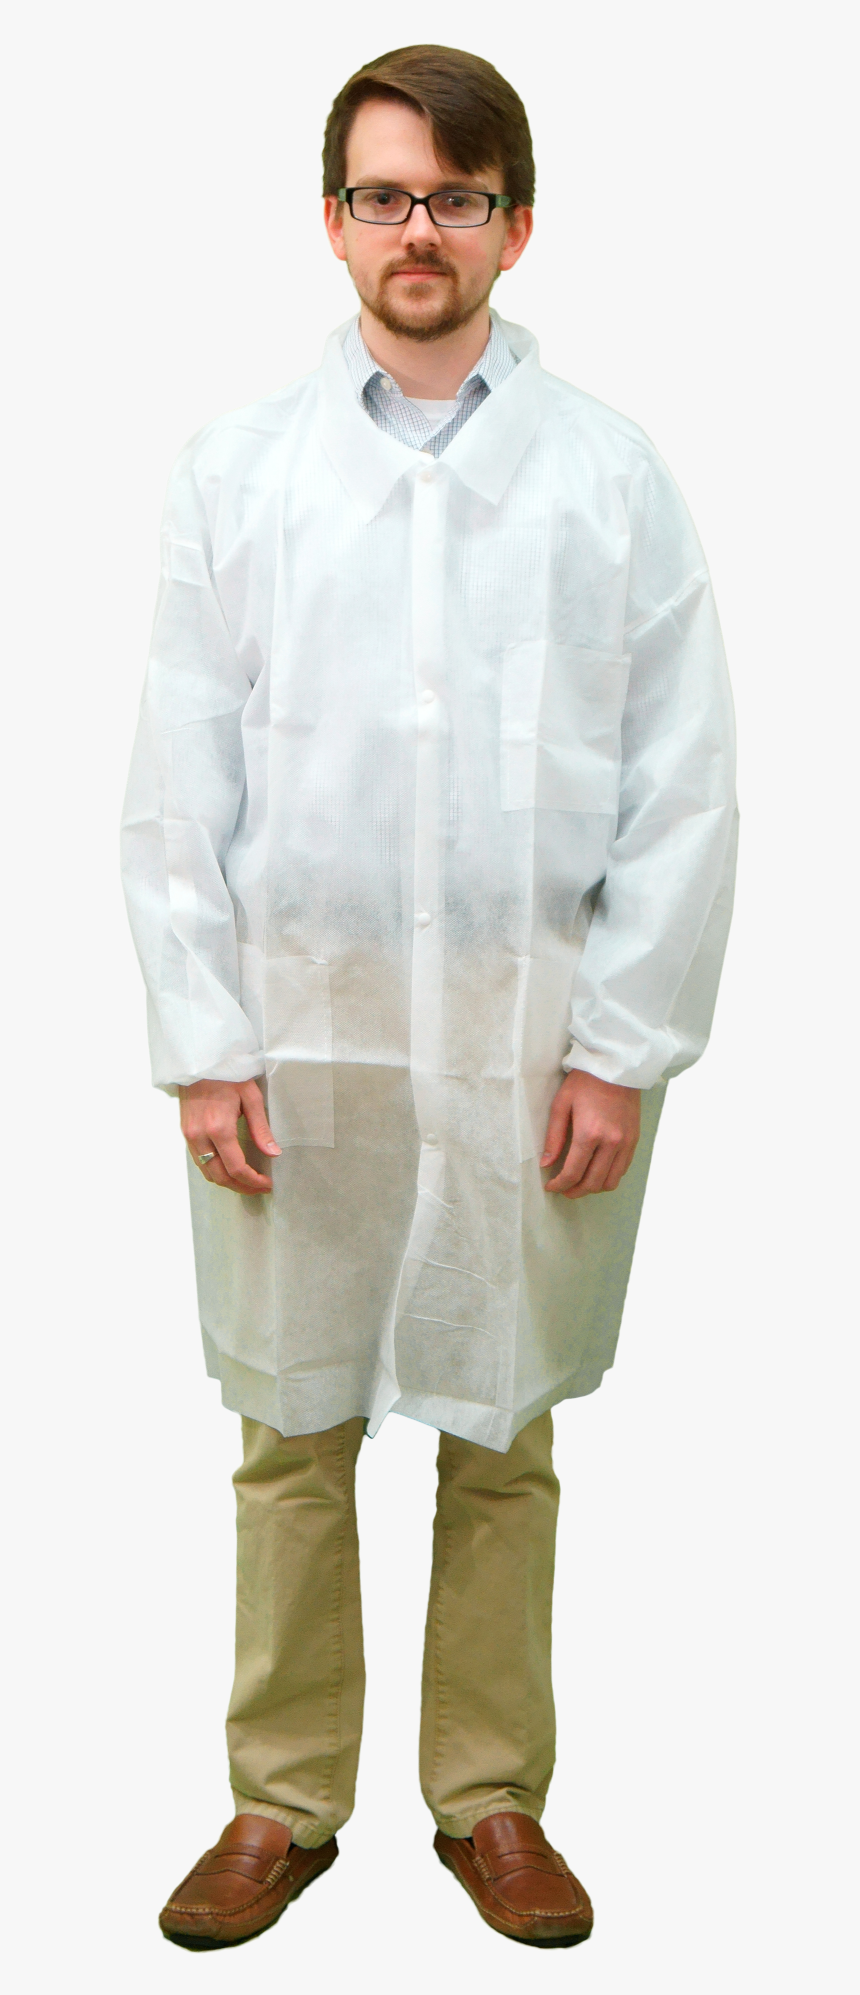 Person In Lab Apron, HD Png Download, Free Download